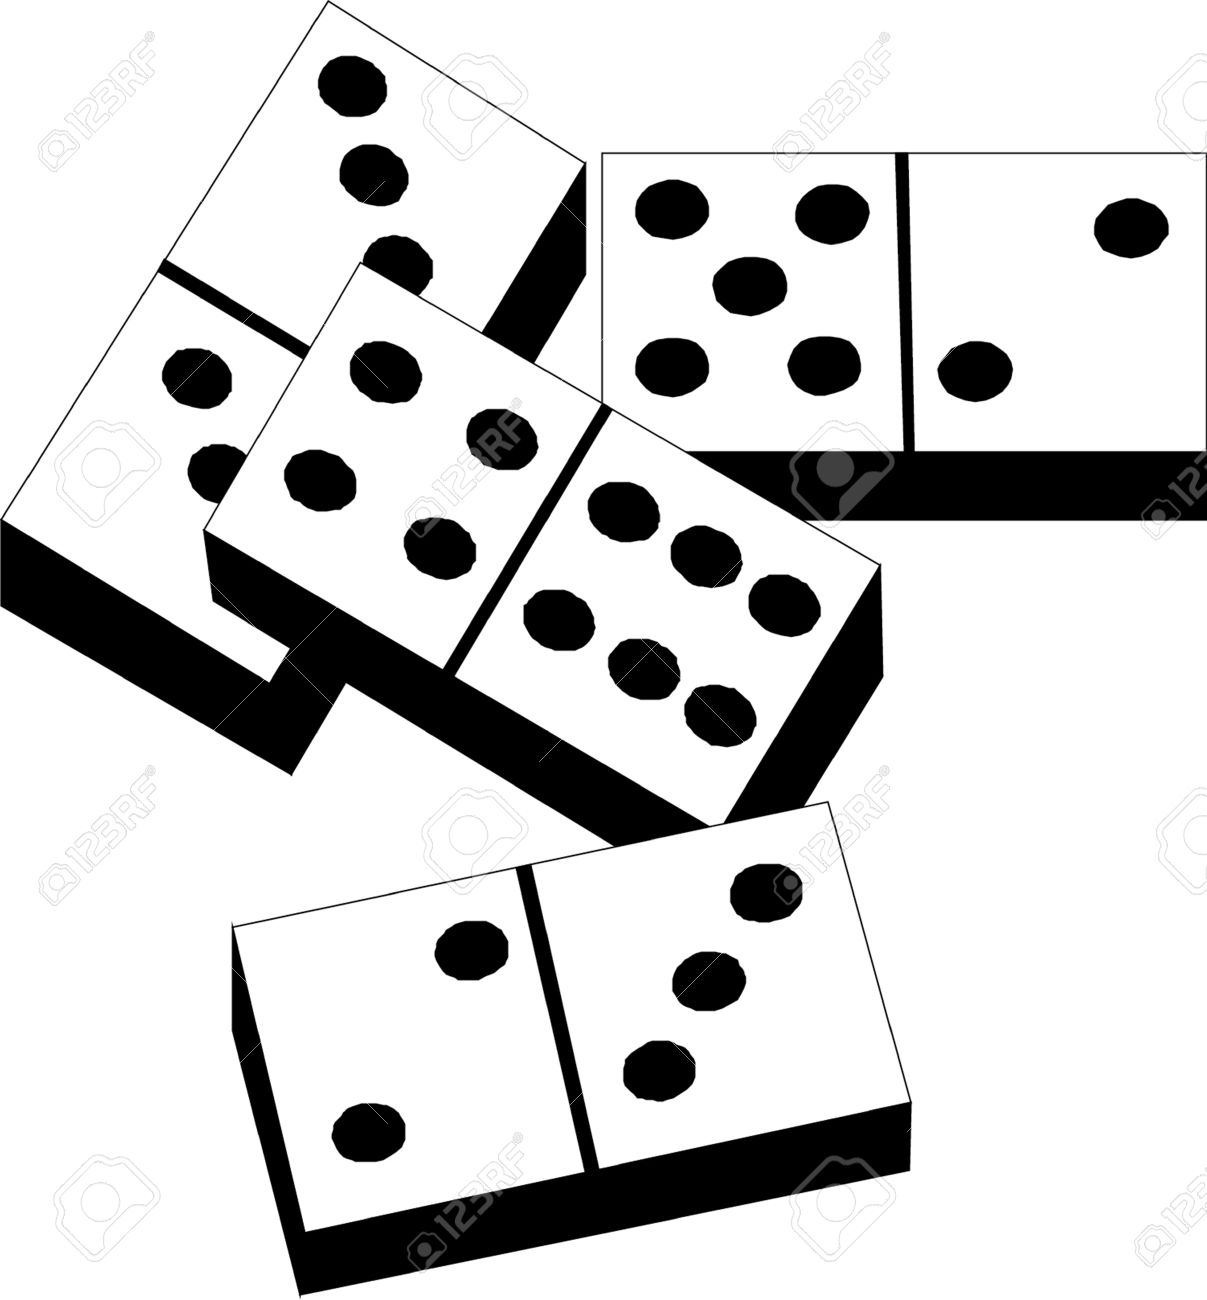 80 Hand Picked How To Draw Dominoes.